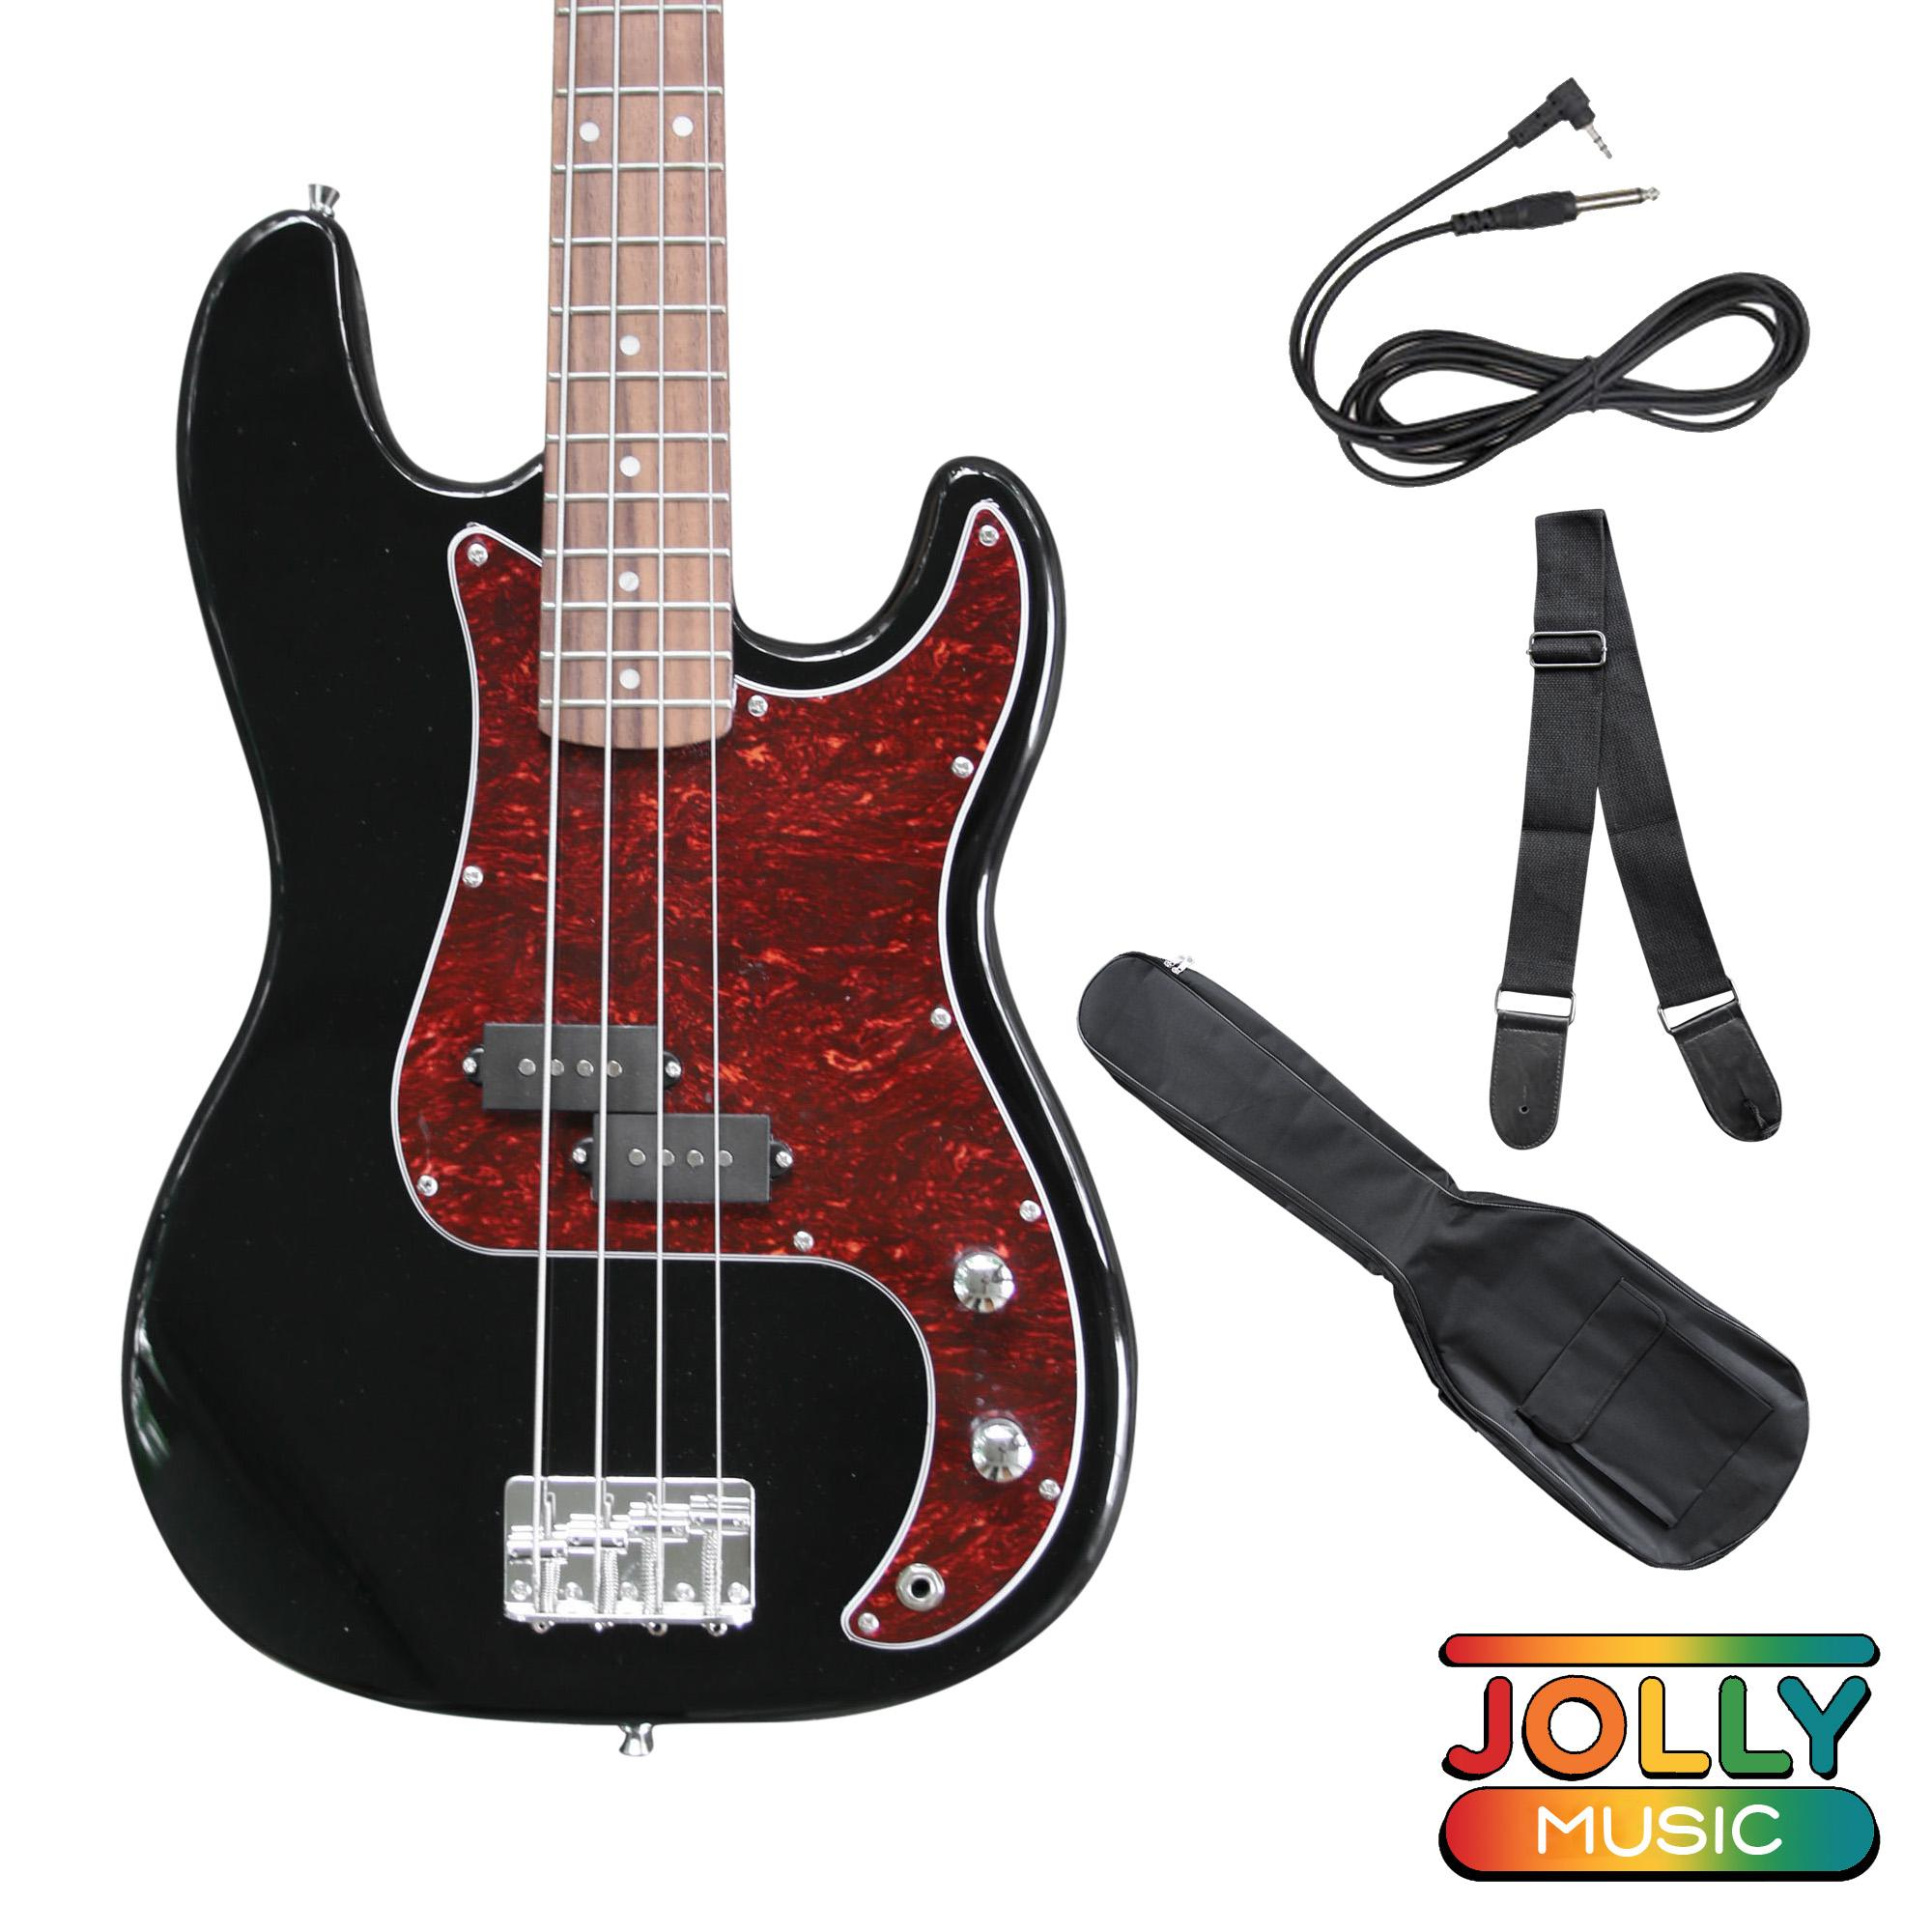 140e9435bd0 Electric Bass Guitar for sale - Rock Bass Guitar best seller, prices ...